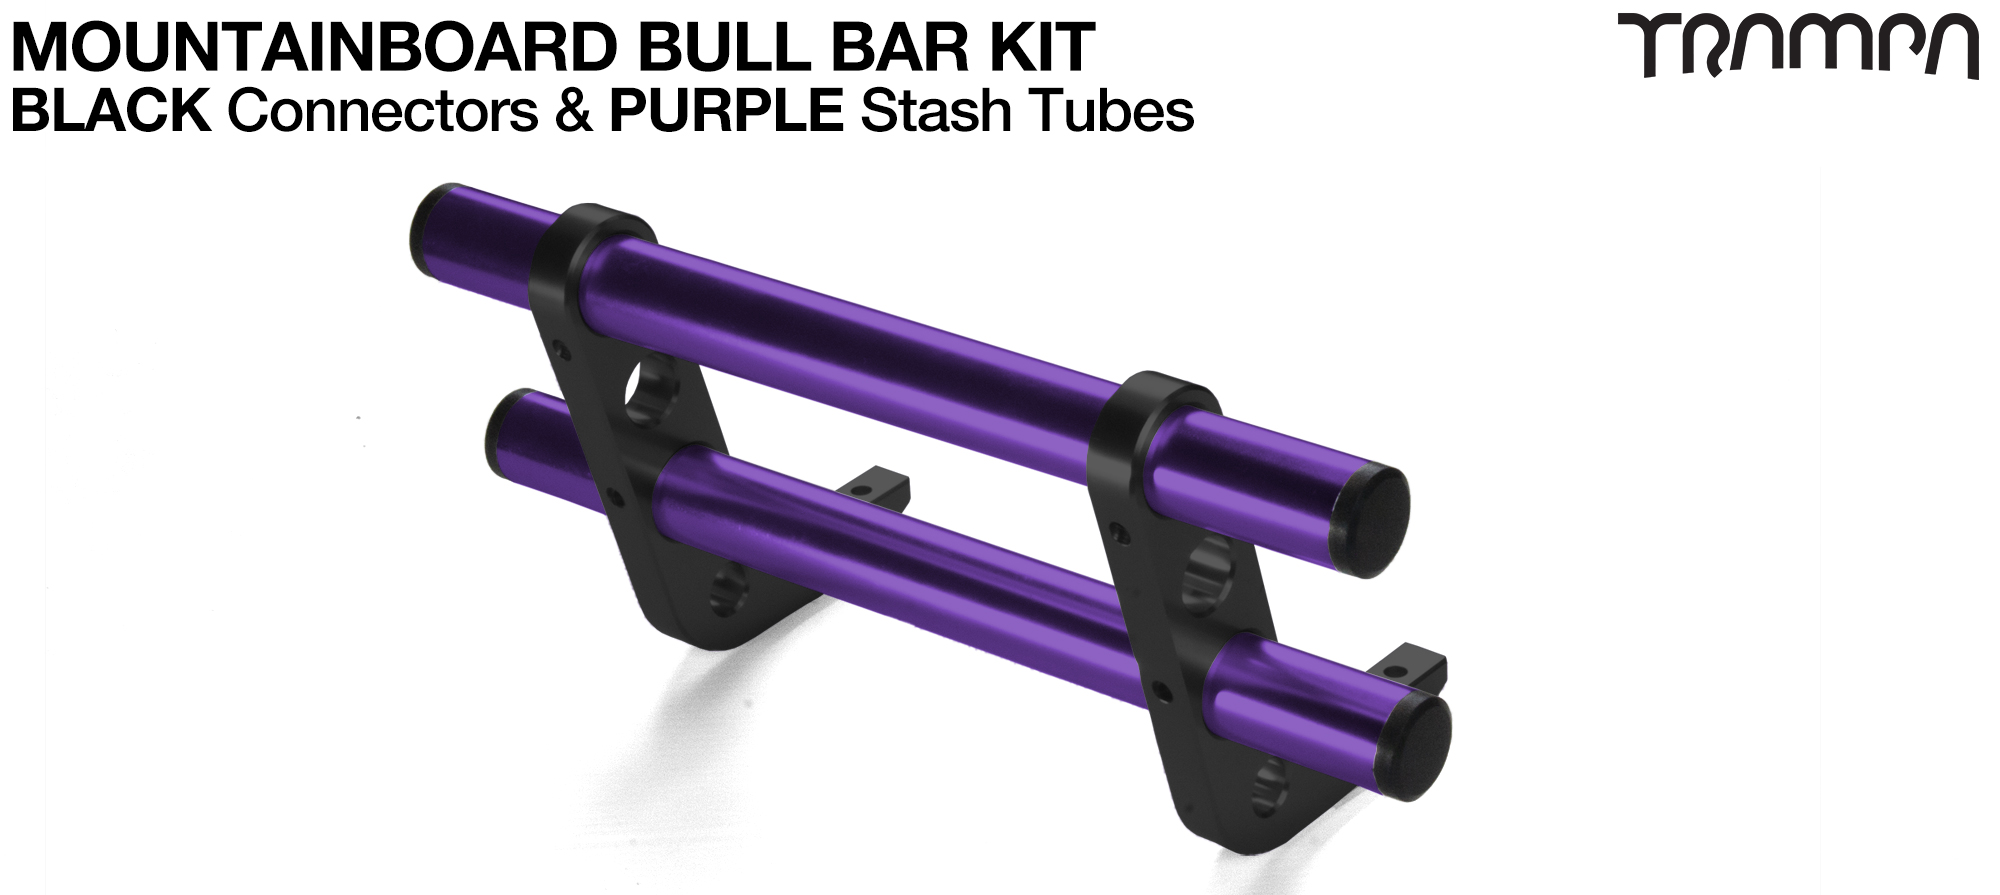 BLACK Uprights & PURPLE Crossbar BULL BARS for MOUNTAINBOARDS using T6 Heat Treated CNC'd AluminIum Clamps, Hollow Aluminium Stash Tubes with Rubber end bungs